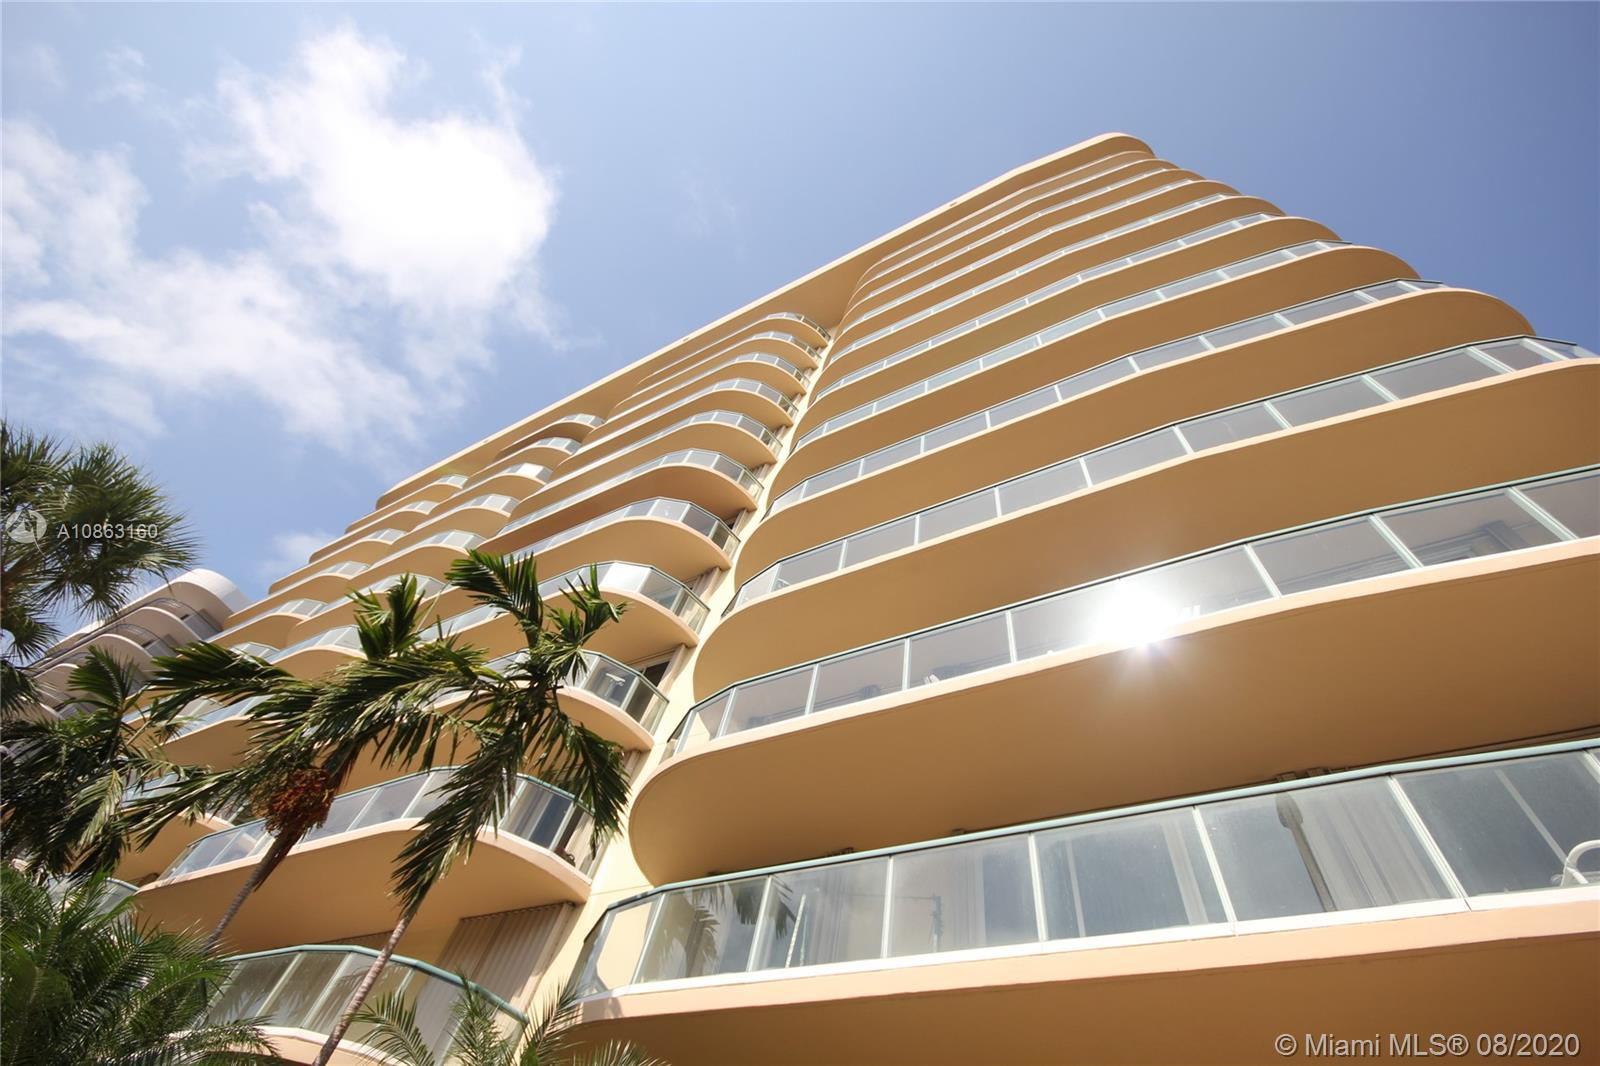 Looking for a great deal on an oceanfront 3 bedroom condo… Here it is!! A quality newer residence built in the mid 90's priced at only $367 per sq ft which is lower than all 3BR closed sales in the same building.Seller will pay the special assessment! Spacious 3/2.5 plus Nanny space. Gorgeous flooring, upmarket lighting/plumbing fixtures, it's all good! Open kitchen w/breakfast bar features hi-end cabinetry, mosaic backsplash, granite counters & top line stainless steel appliances. The expansive living /dining areas & the wrap around ocean view balcony are perfect for entertaining friends and family. The building offers comprehensive amenities including a large pool / deck w/direct ocean access. If you're looking for good space and true value you must see this one!